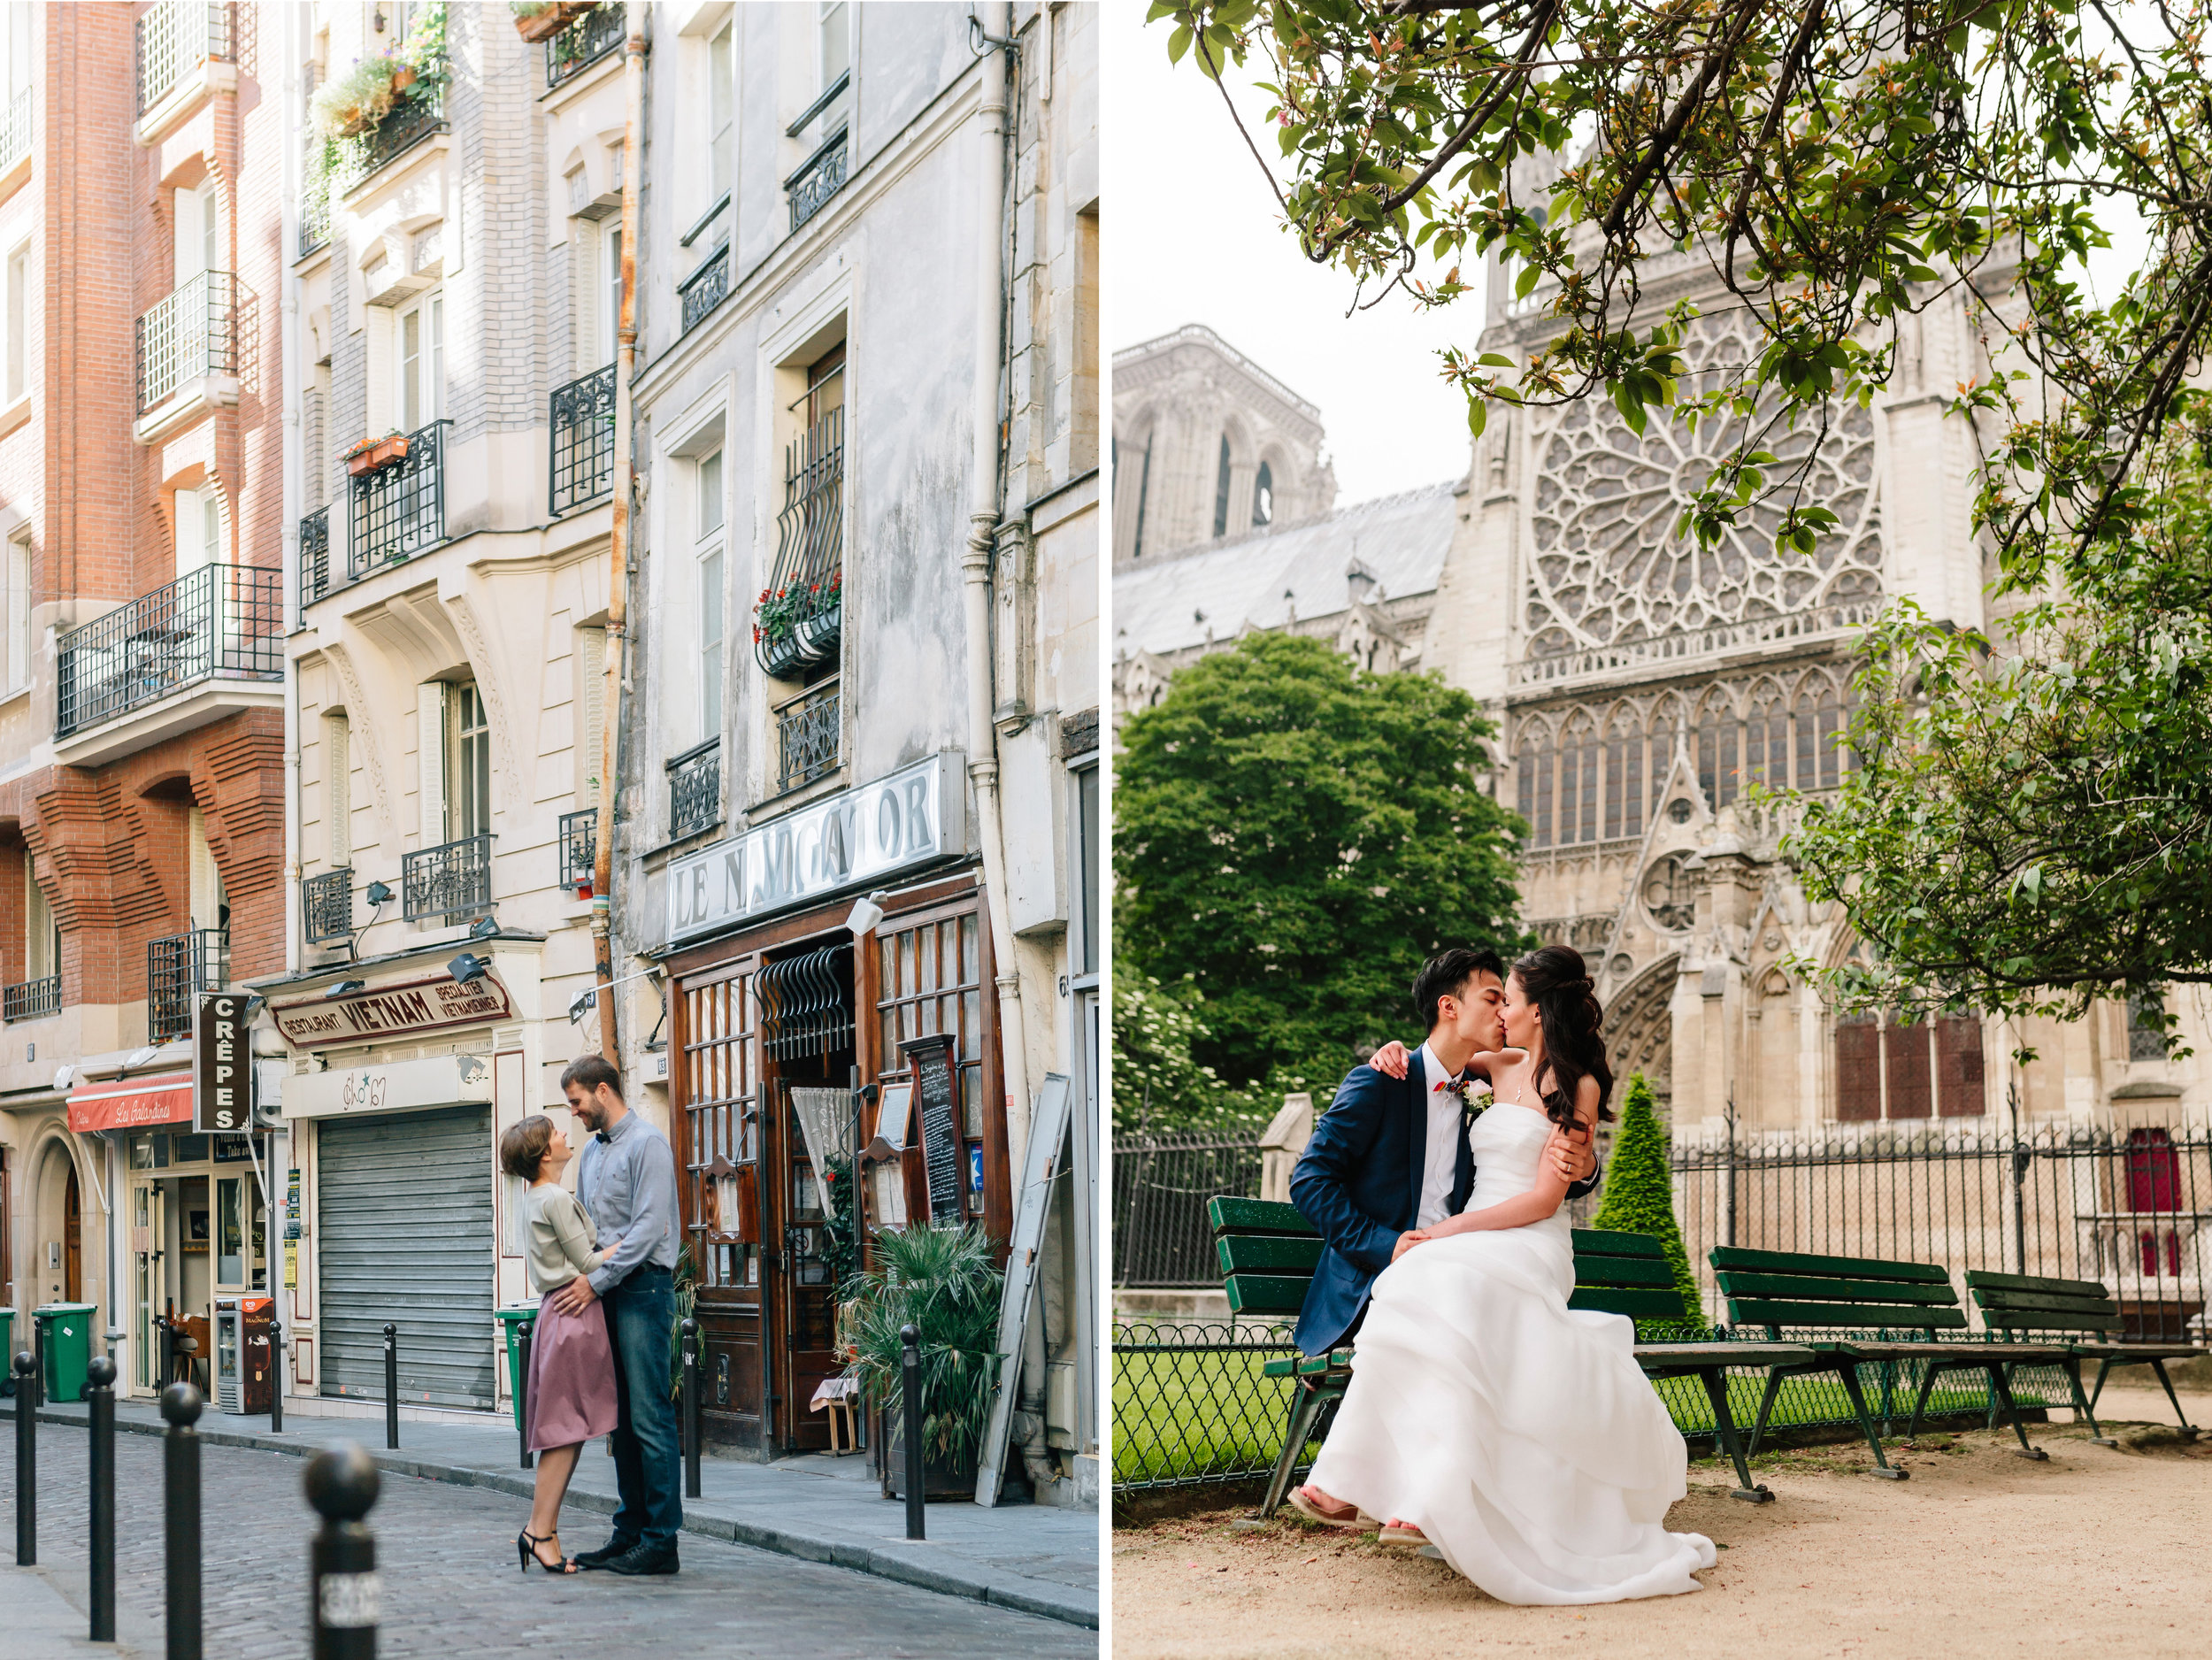 paris photographer pre-wedding and engagement couple sessions diptych by notre dame and in saint germain